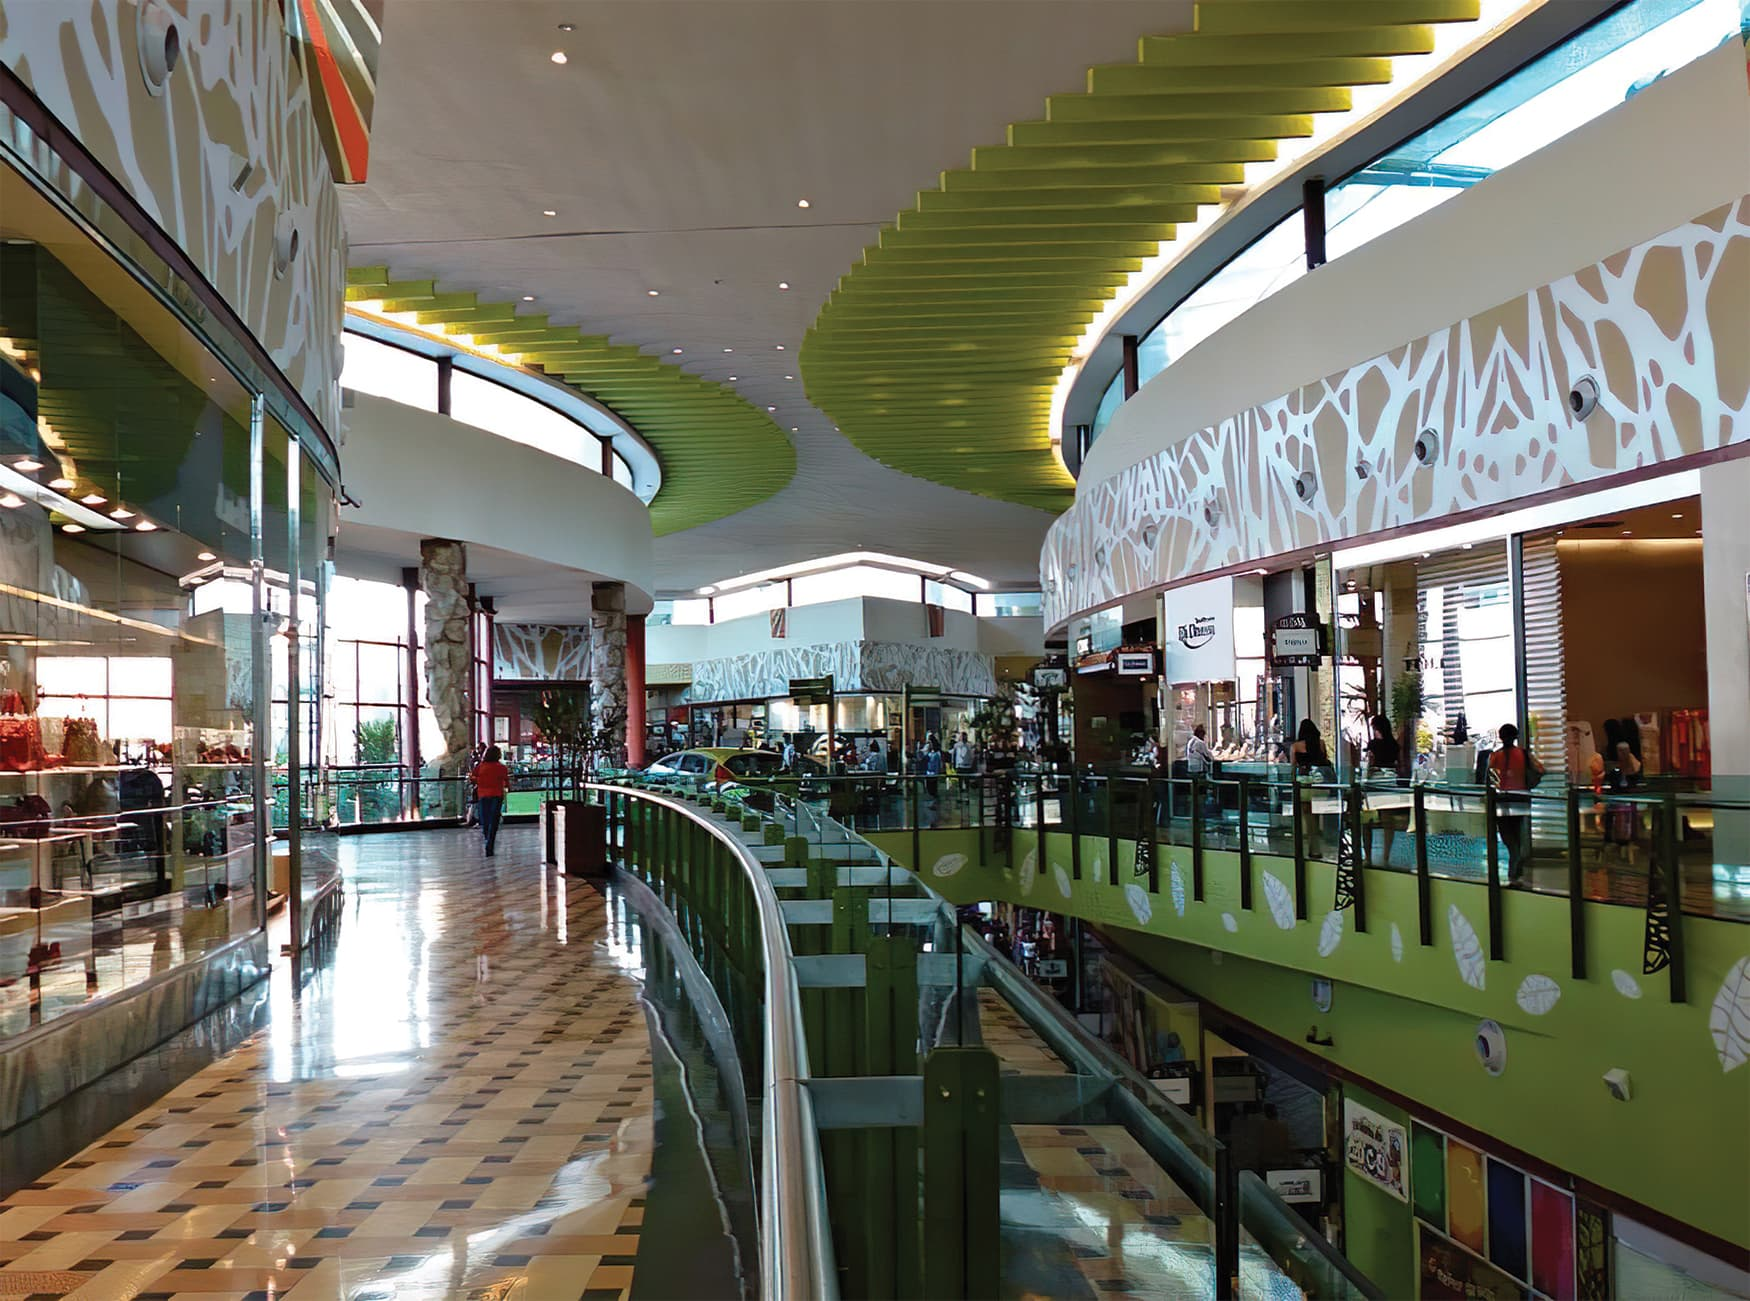 Manauara Shopping, a retail destination project located in Brazil. Food Hall Design.